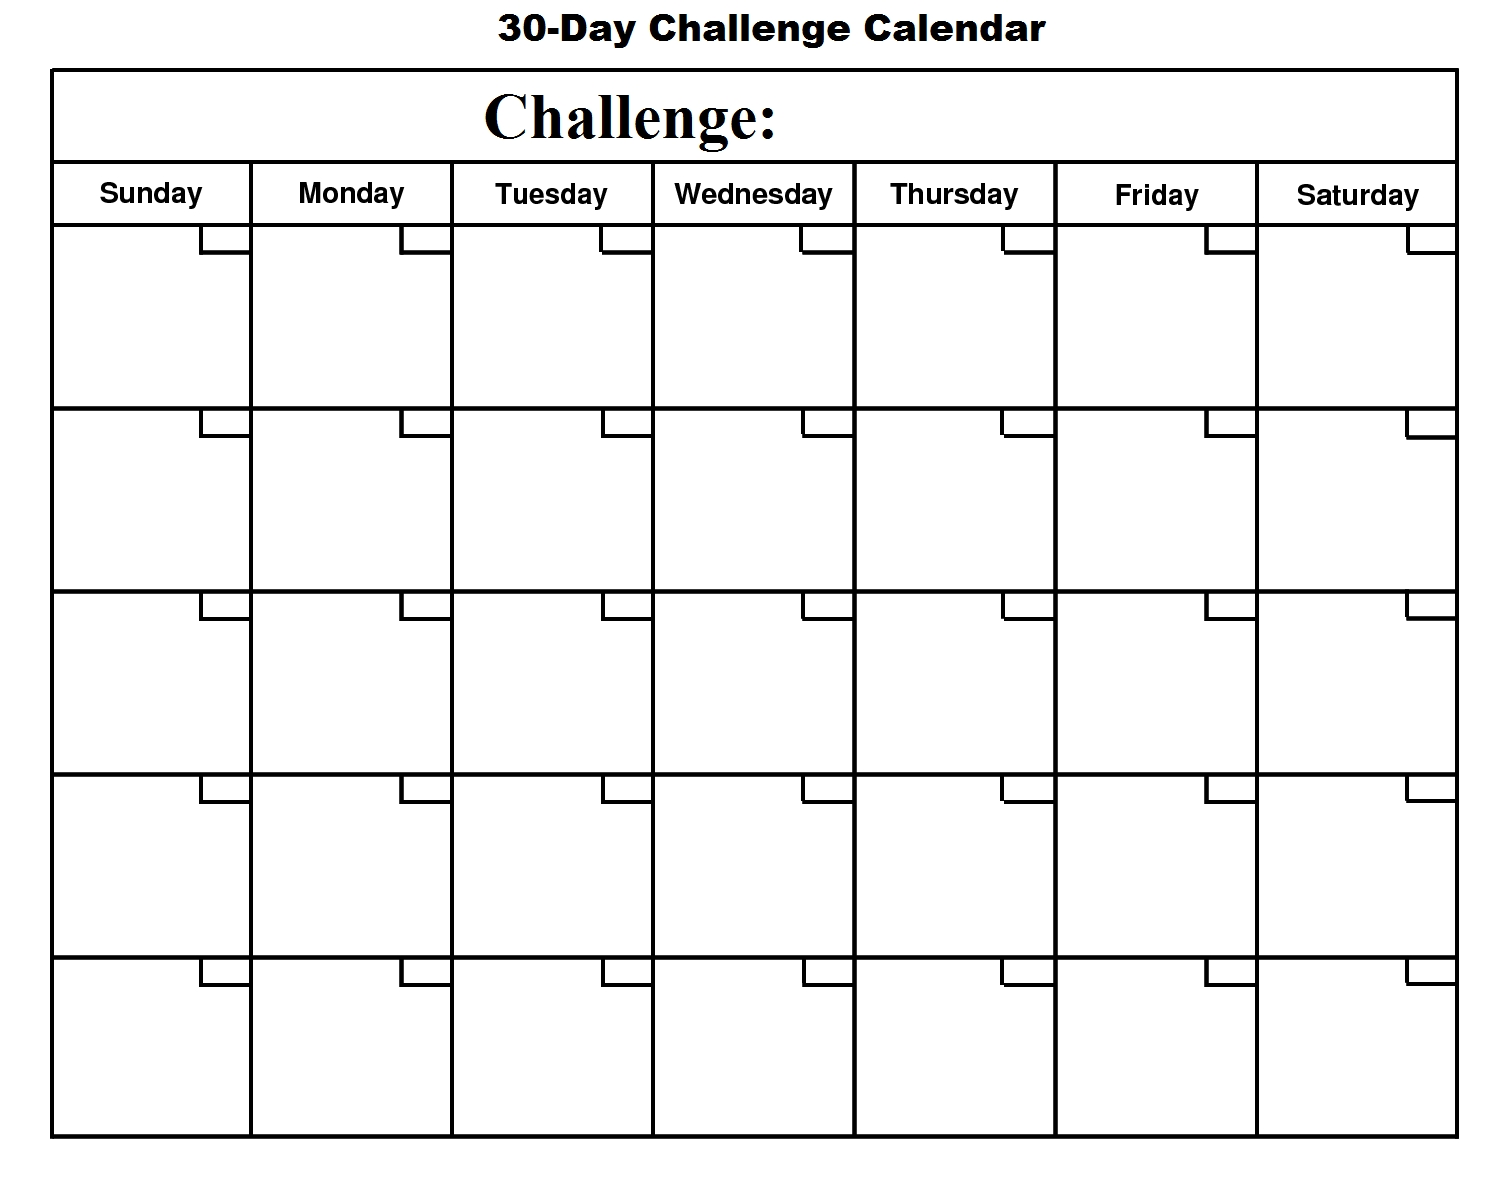 30 Day Challenge Calendar - Basic Growth  30 Day Challenge Calendar